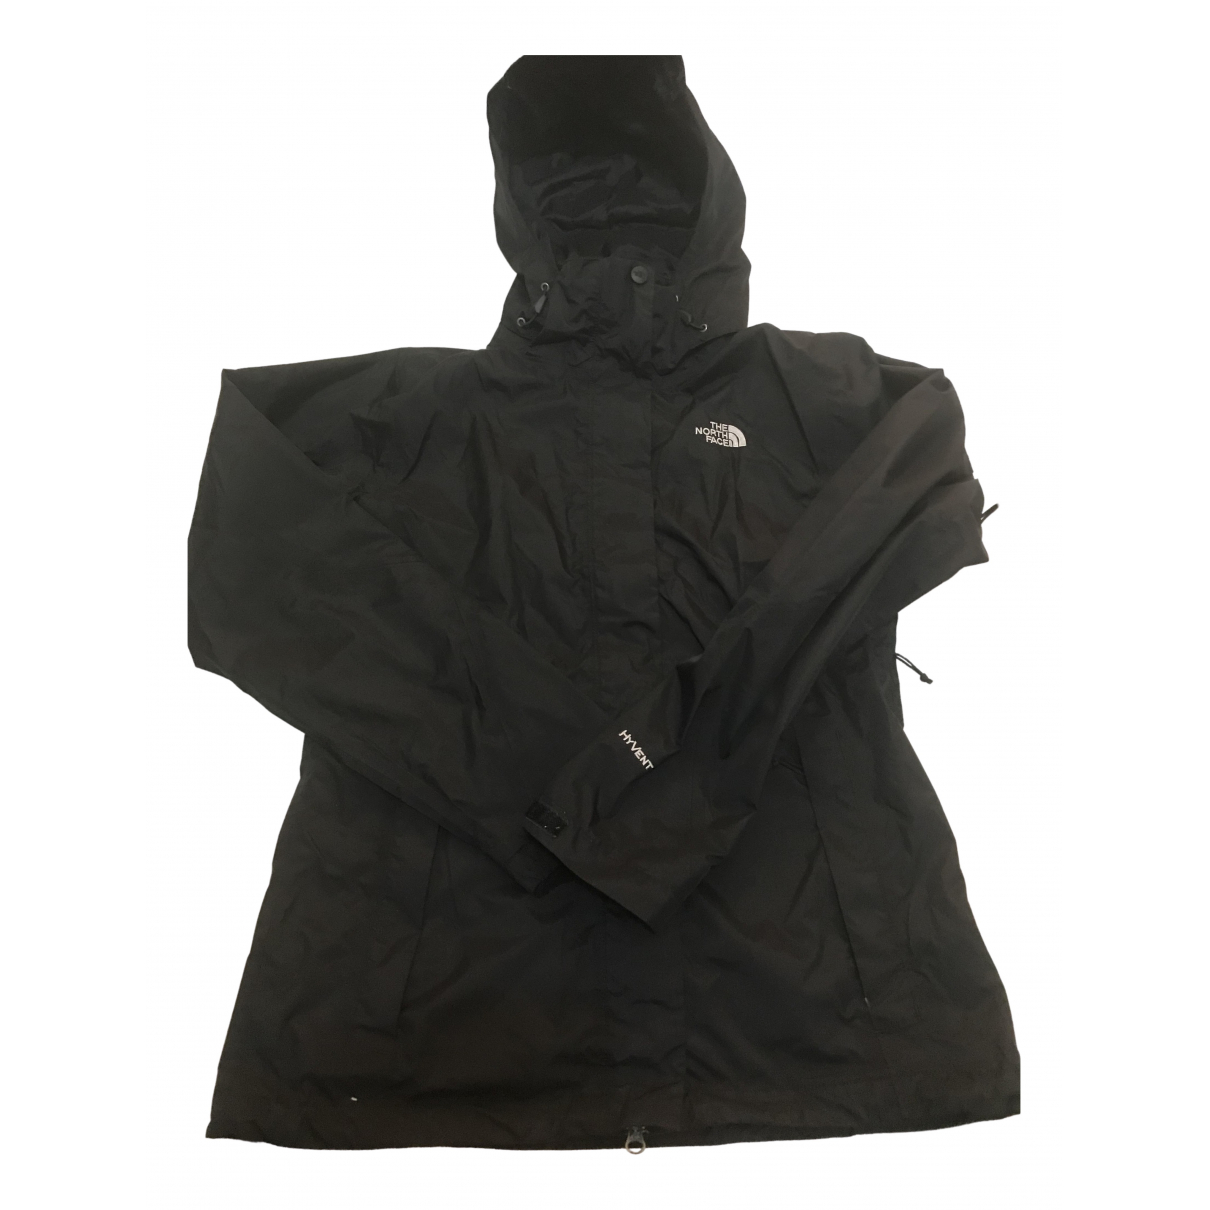 The North Face \N Black coat for Women S International